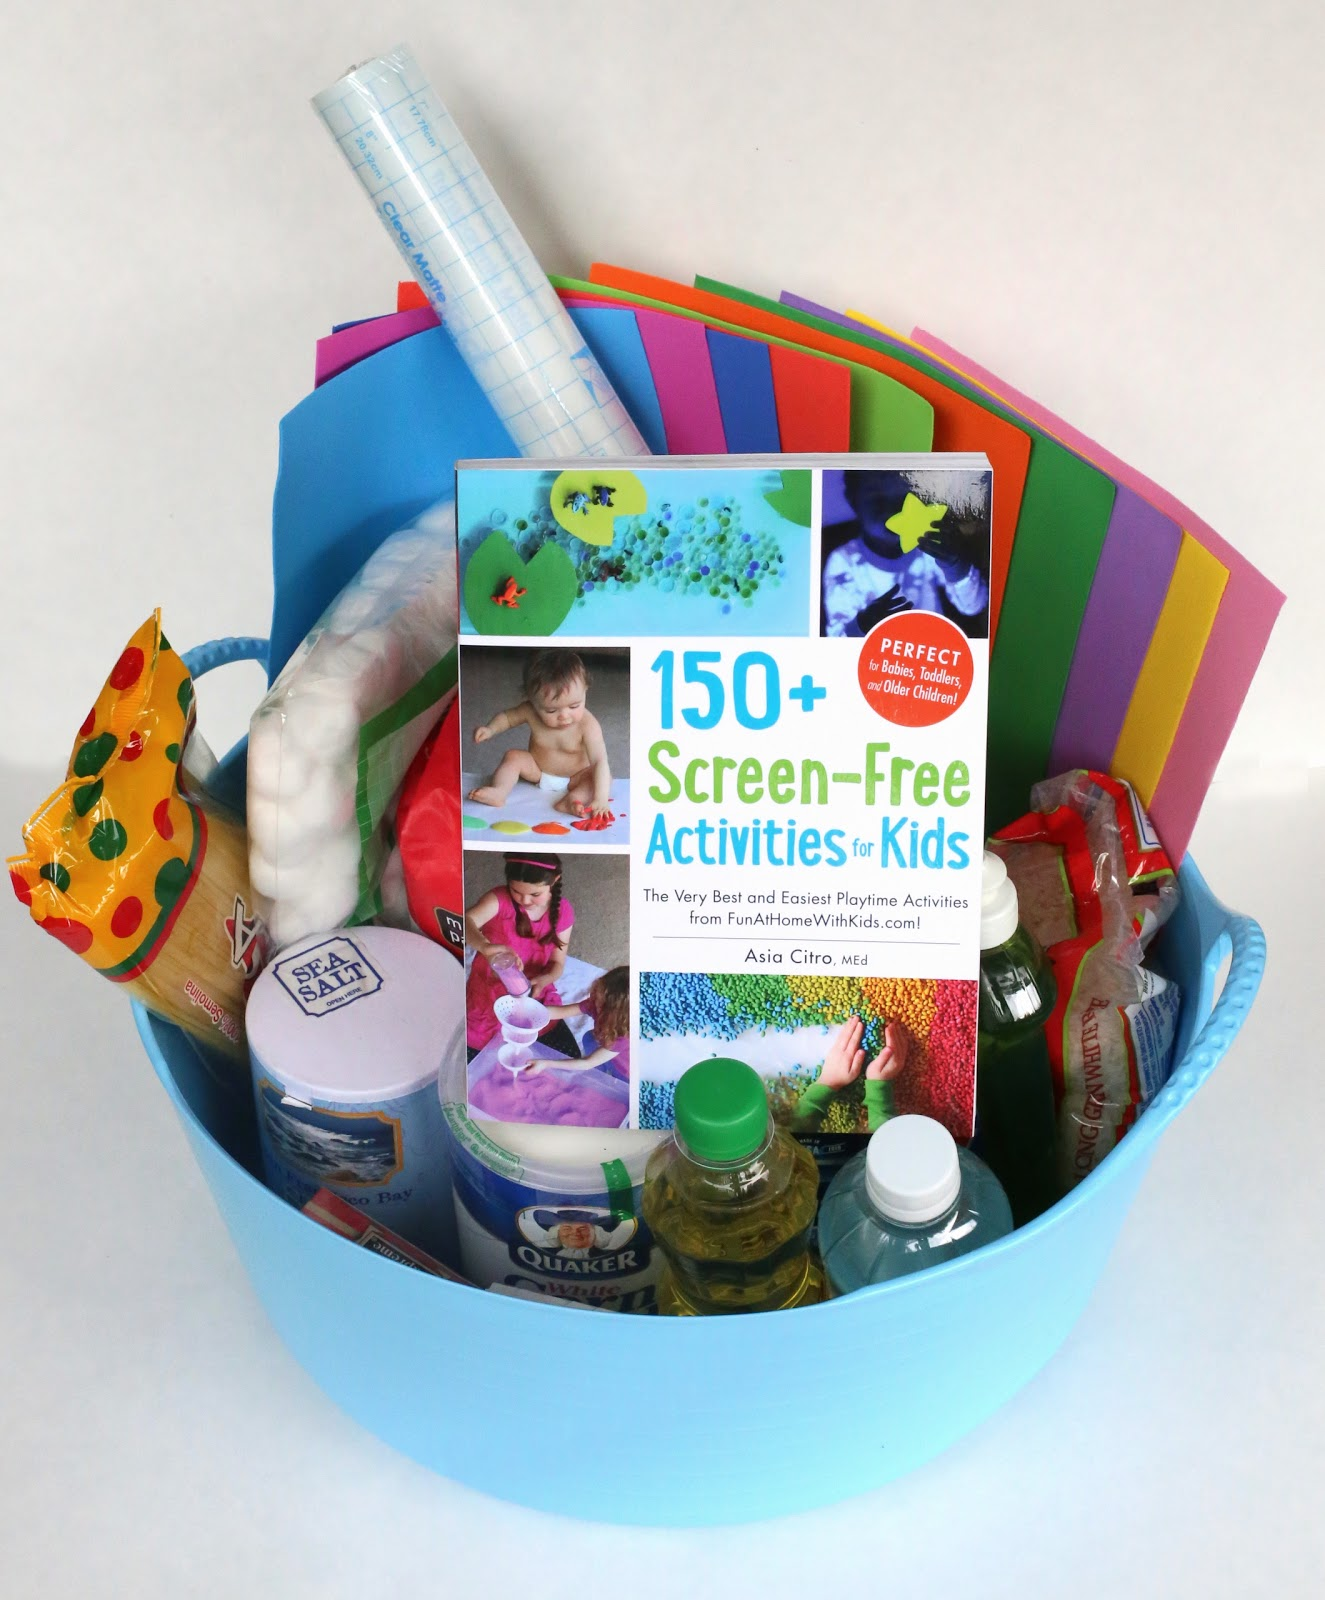 DIY Kits for Creative Gifts:  Ideas for small or large sensory kits for a gift for a friend or classmate, your child's preschool teacher or caregiver, a grandparents house or babysitter's kit, gift basket for a fundraising auction, birthday party or baby shower gift!  From Fun at Home with Kids